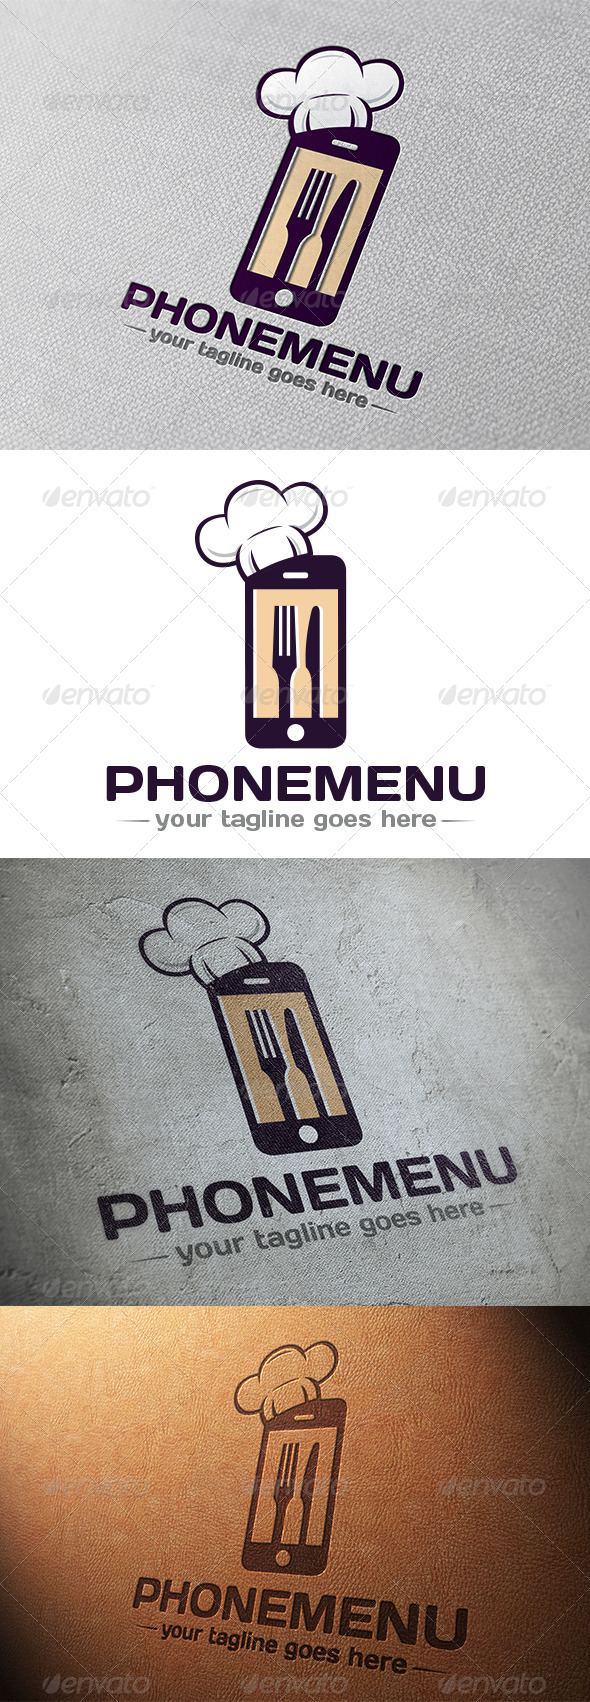 GraphicRiver Phone Restaurant App Logo 5743515